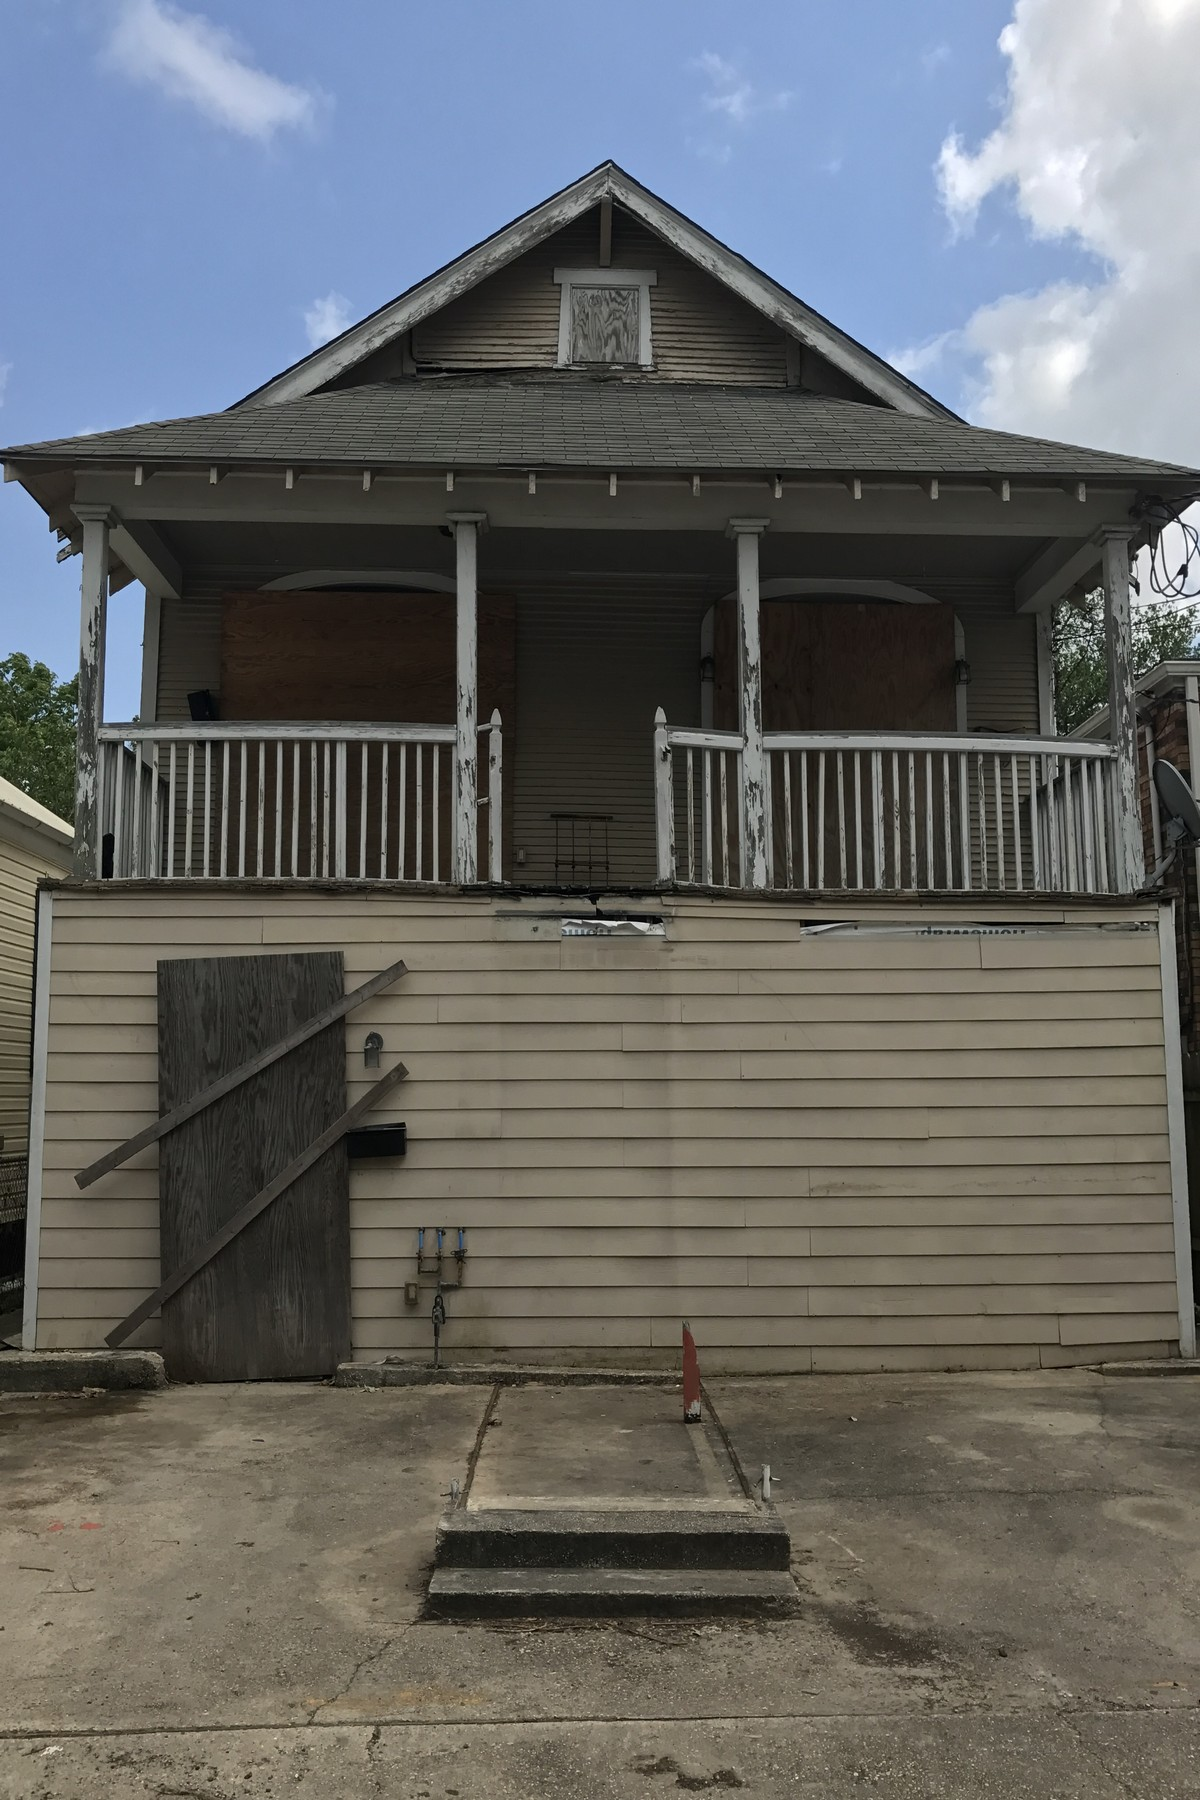 Multi-Family Home for Sale at 1617-19 Lesseps Street 1617-19 Lesseps St New Orleans, Louisiana 70117 United States